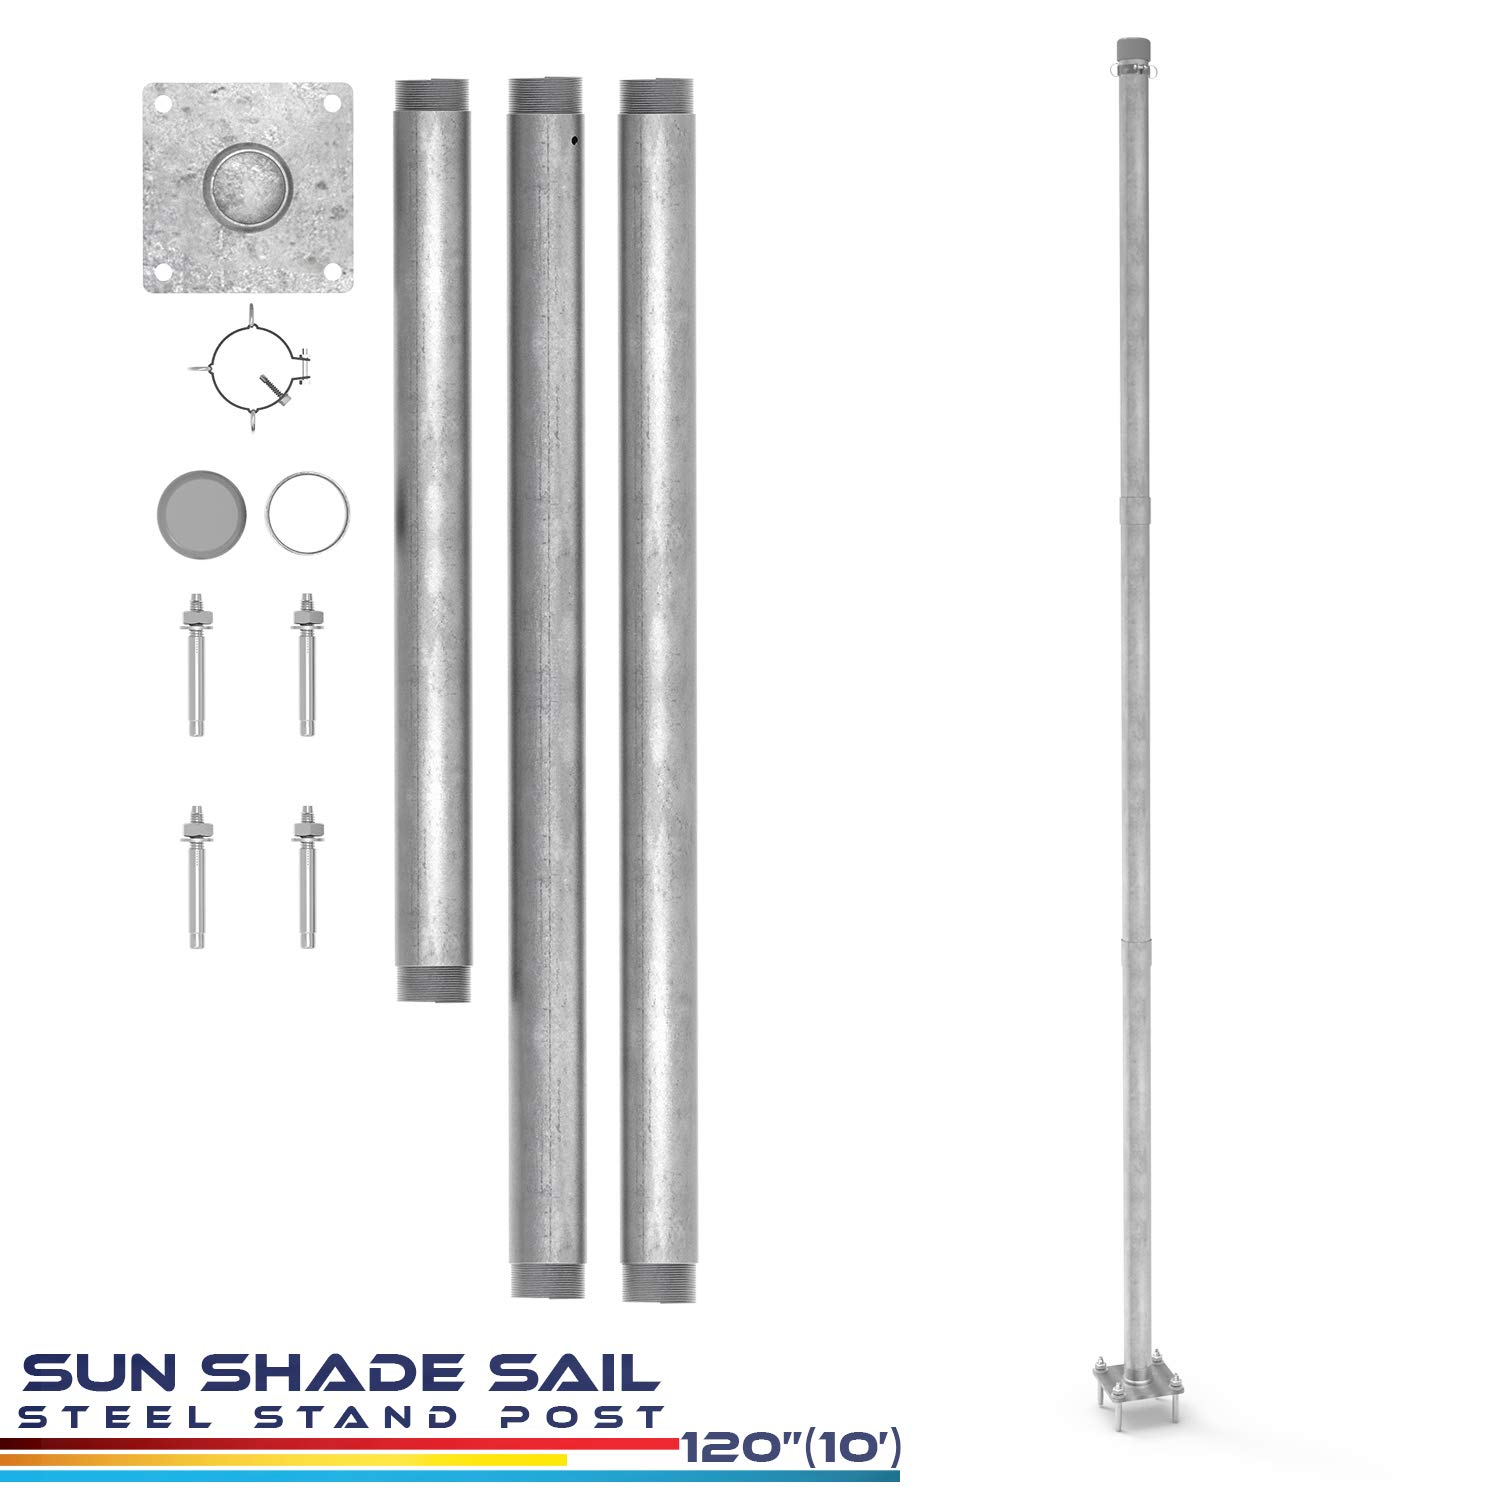 Windscreen4less Sun Shade Sail Pole Kit, Replacement Stand Support Post -10' Feet Tall (120'') for Canopy Awning Patio Deck Garden Concrete Extension Pole Available φ 3''-Steel